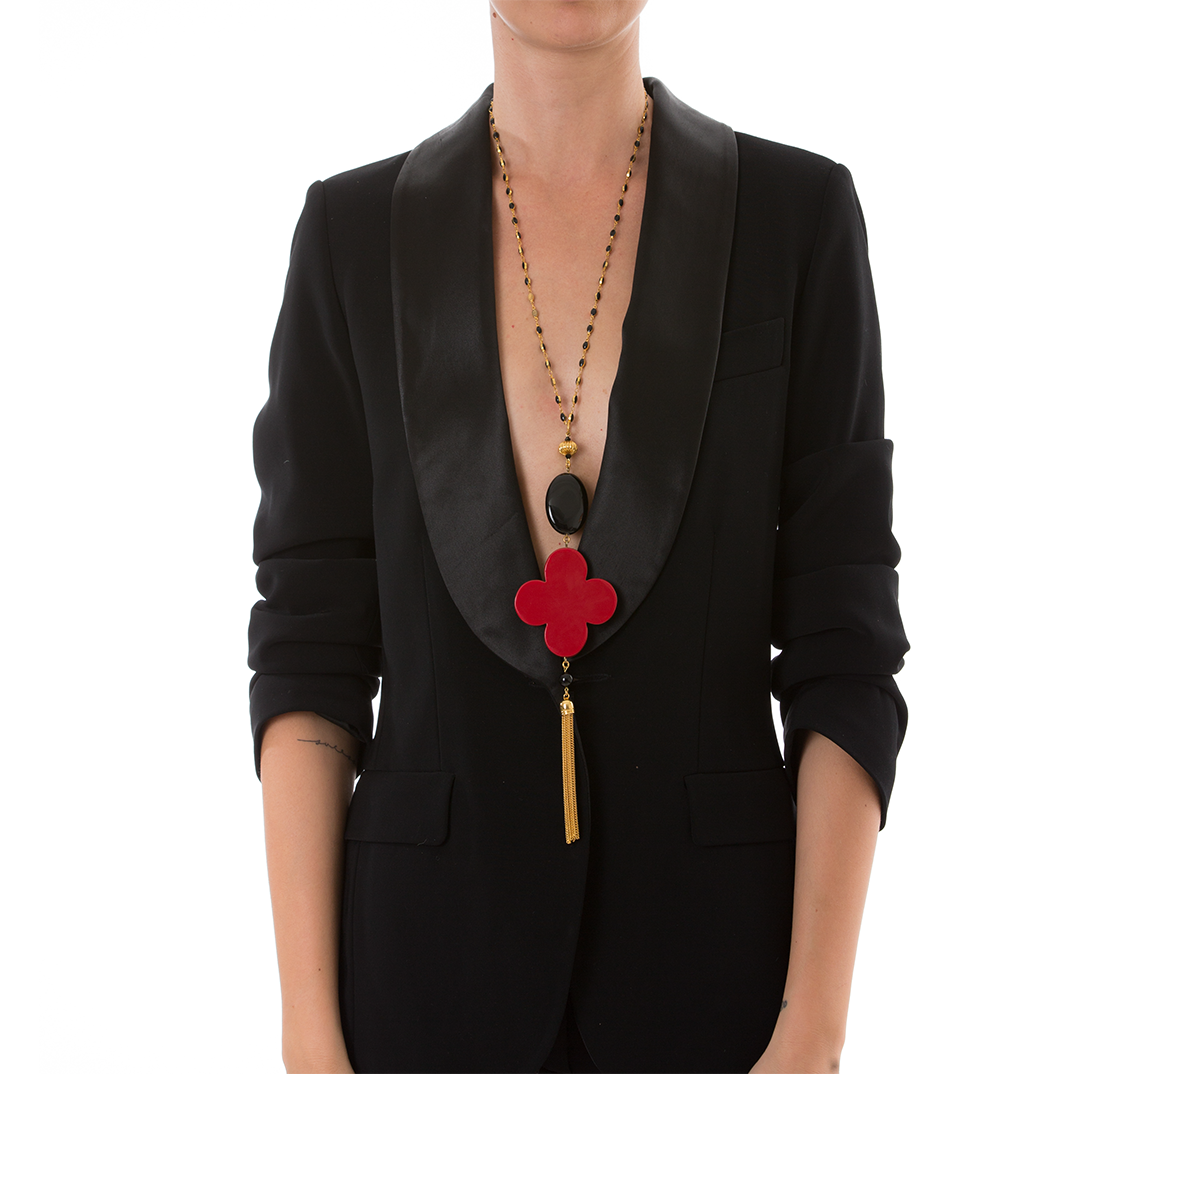 ROMANE Adjustable Tasseled Gold-Plated Necklace & Red Lacquered-Horn